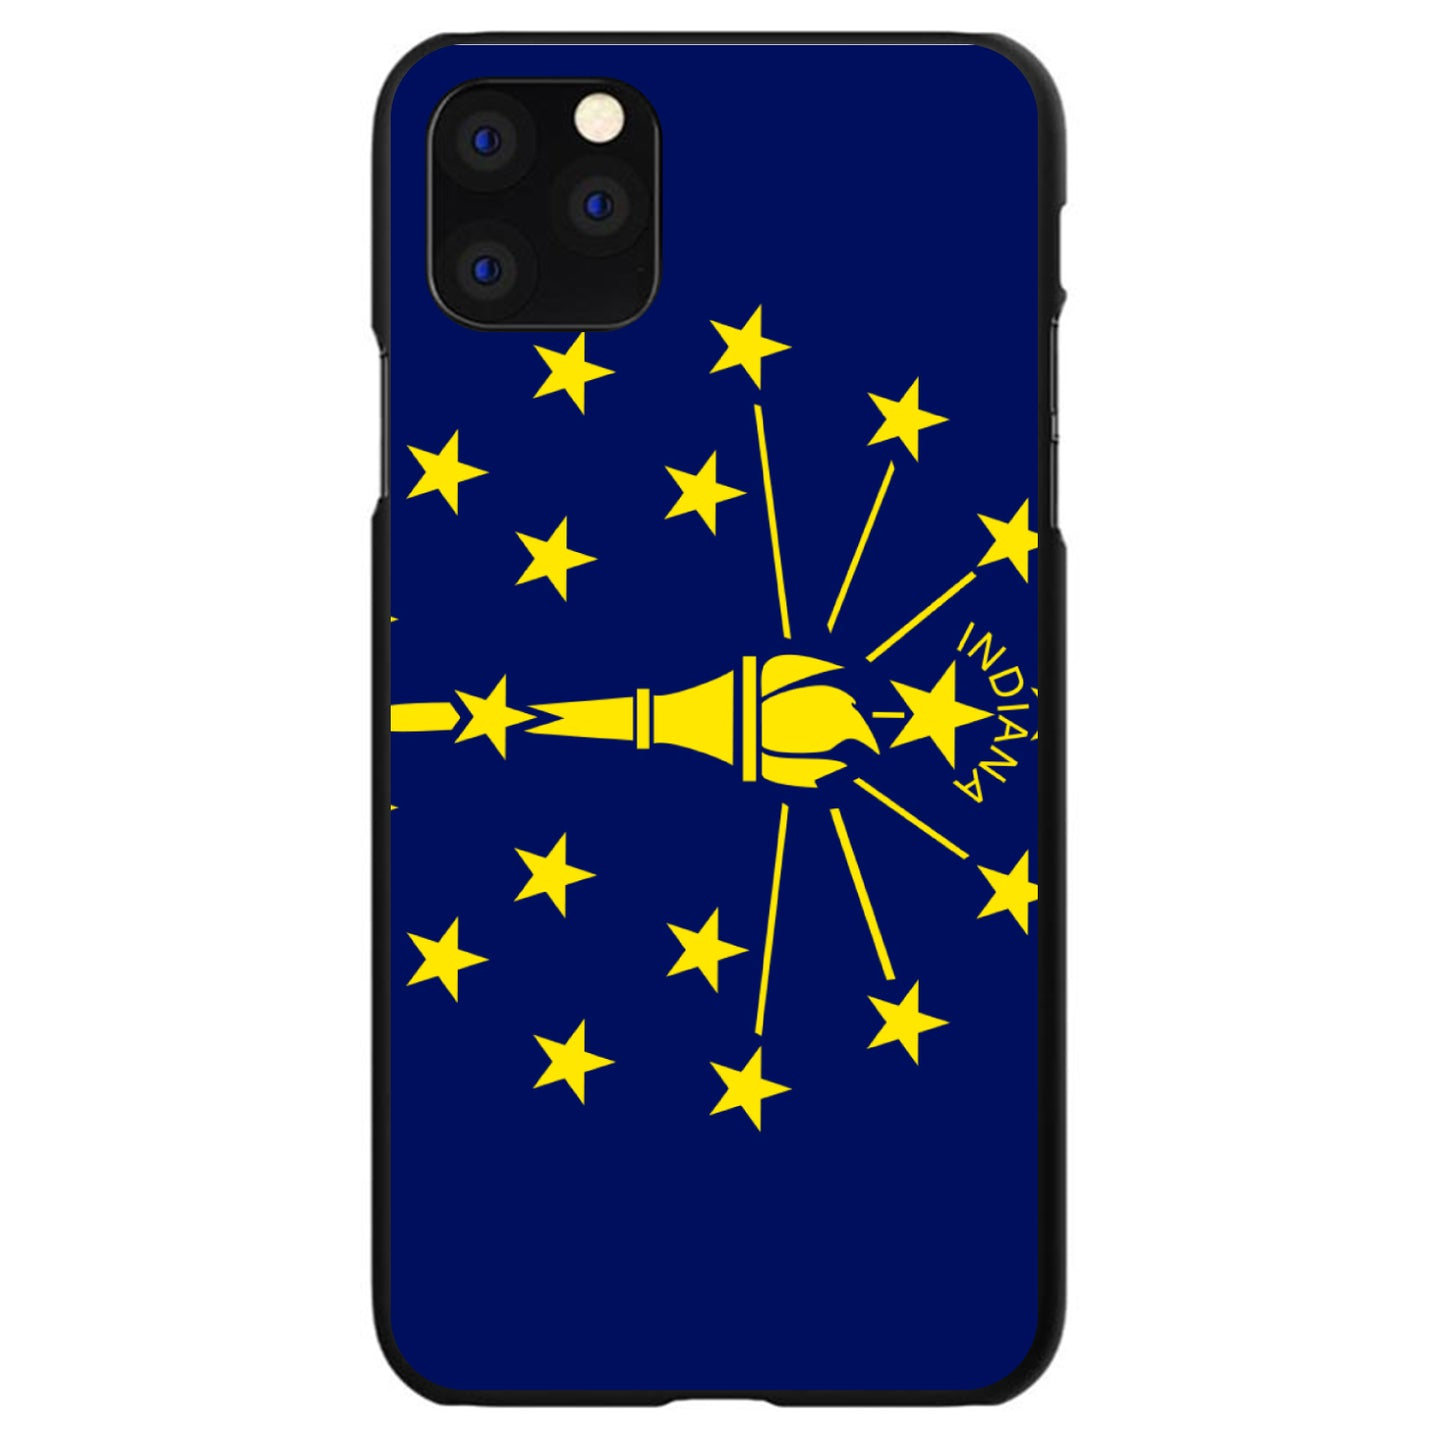 DistinctInk® Hard Plastic Snap-On Case for Apple iPhone - Indiana State Flag